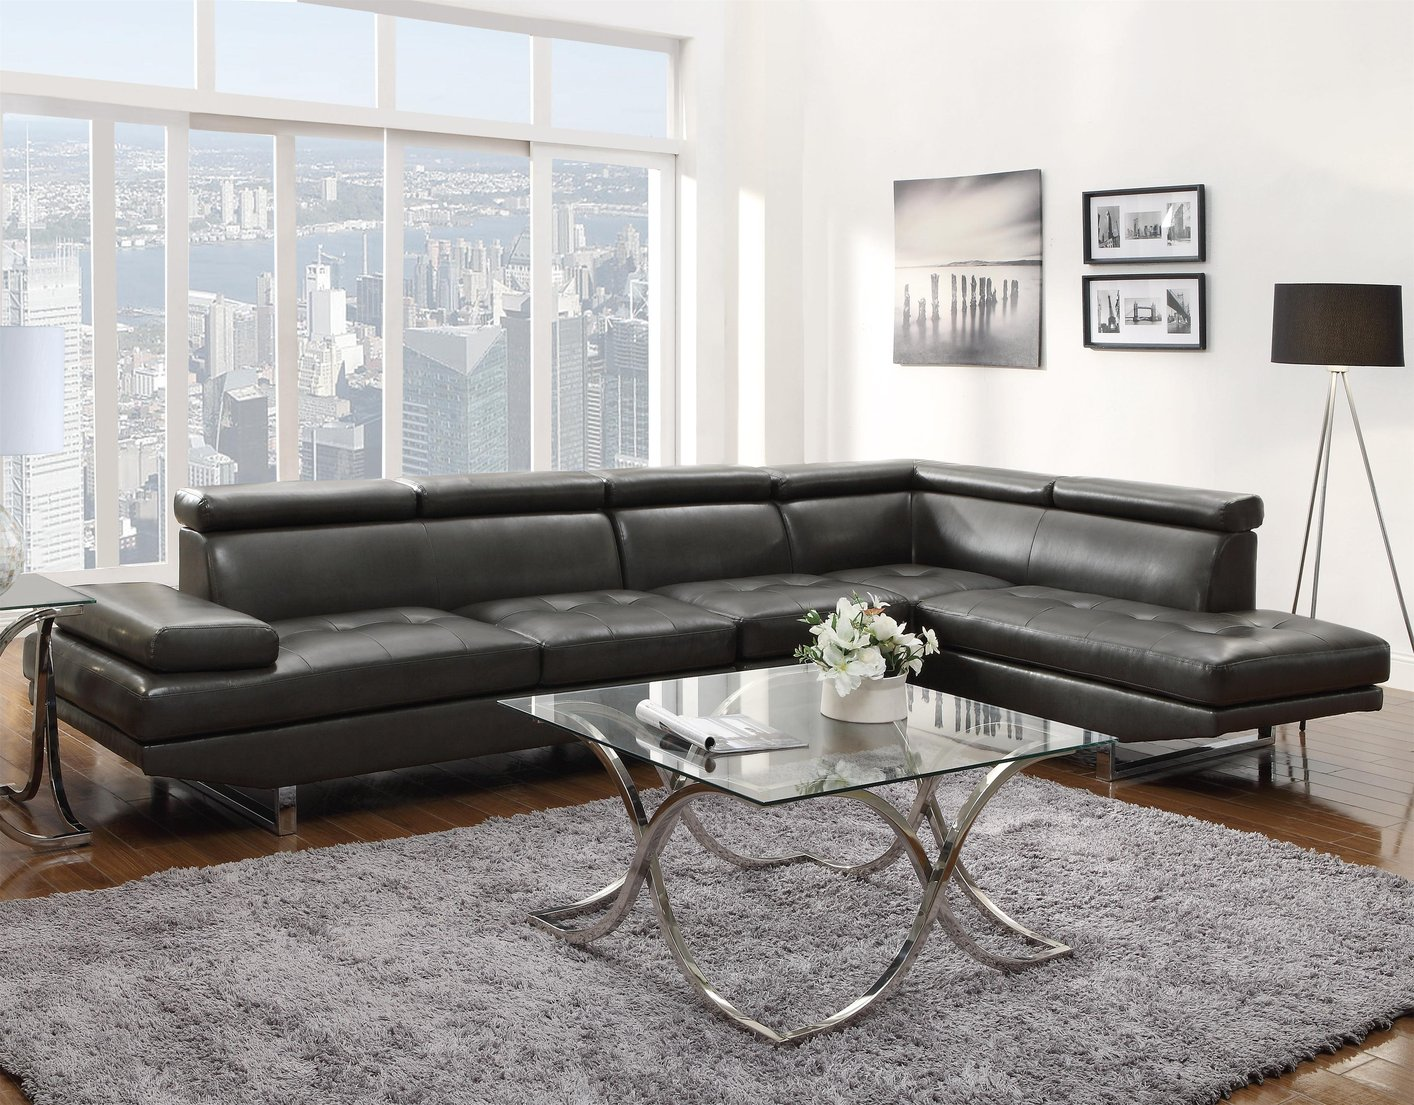 Coaster 503029 Grey Leather Sectional Sofa Steal A Sofa